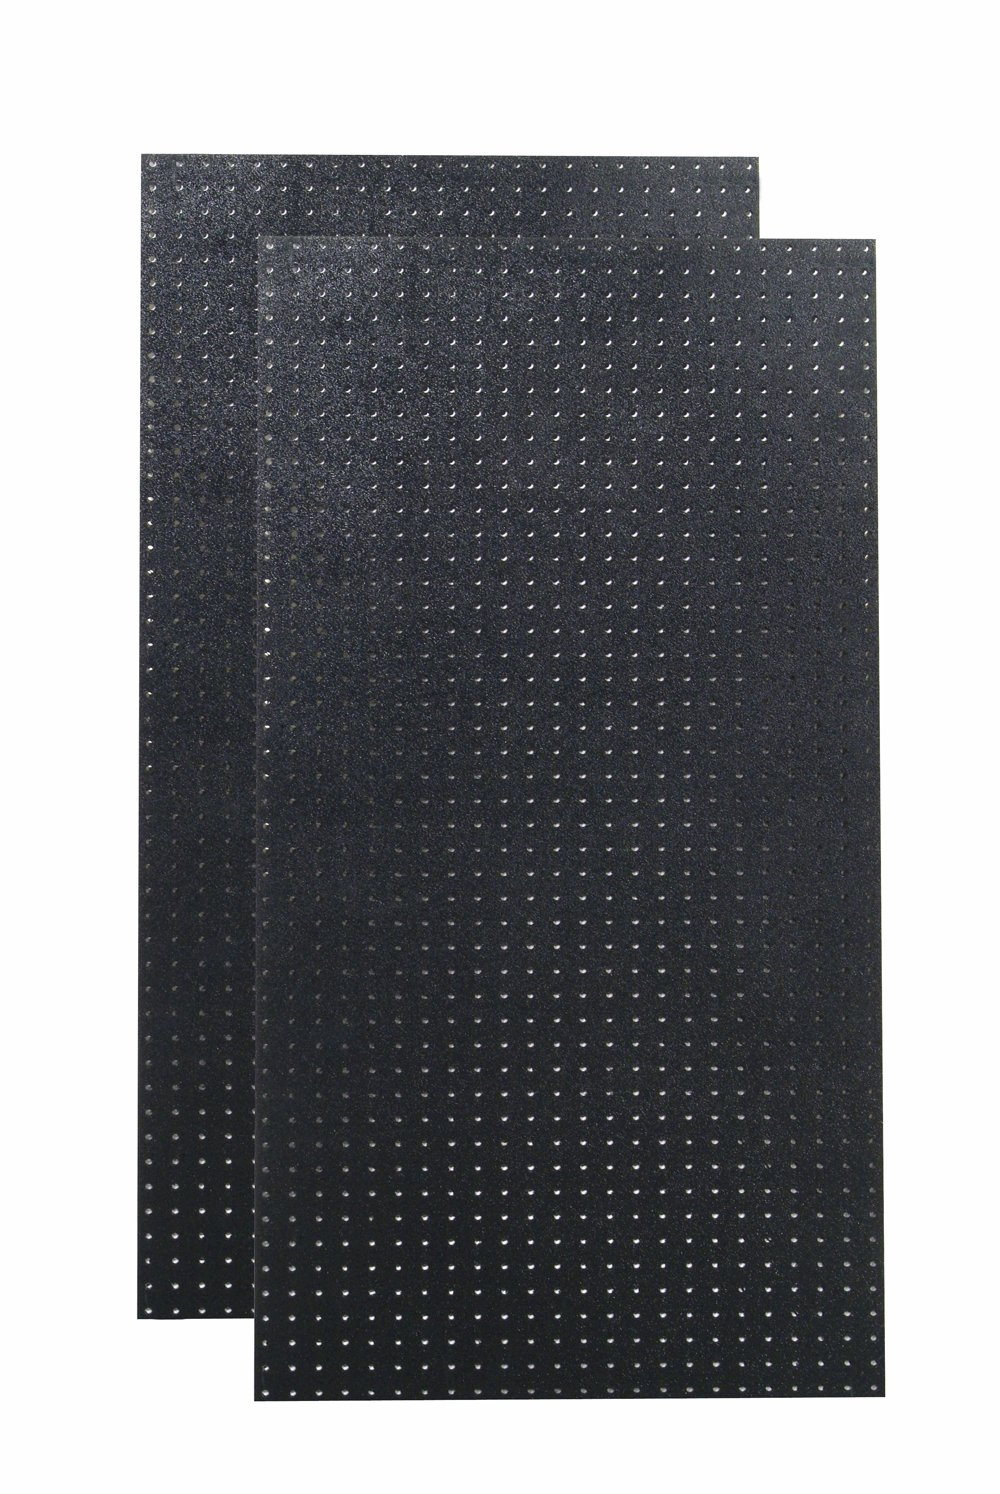 Triton Products DB-2BK Polyethylene Pegboards Matte Front Texture with 9/32'' Hole and 1'' O.C. Hole Spacing, 24 x 48 x 3/16'', Black